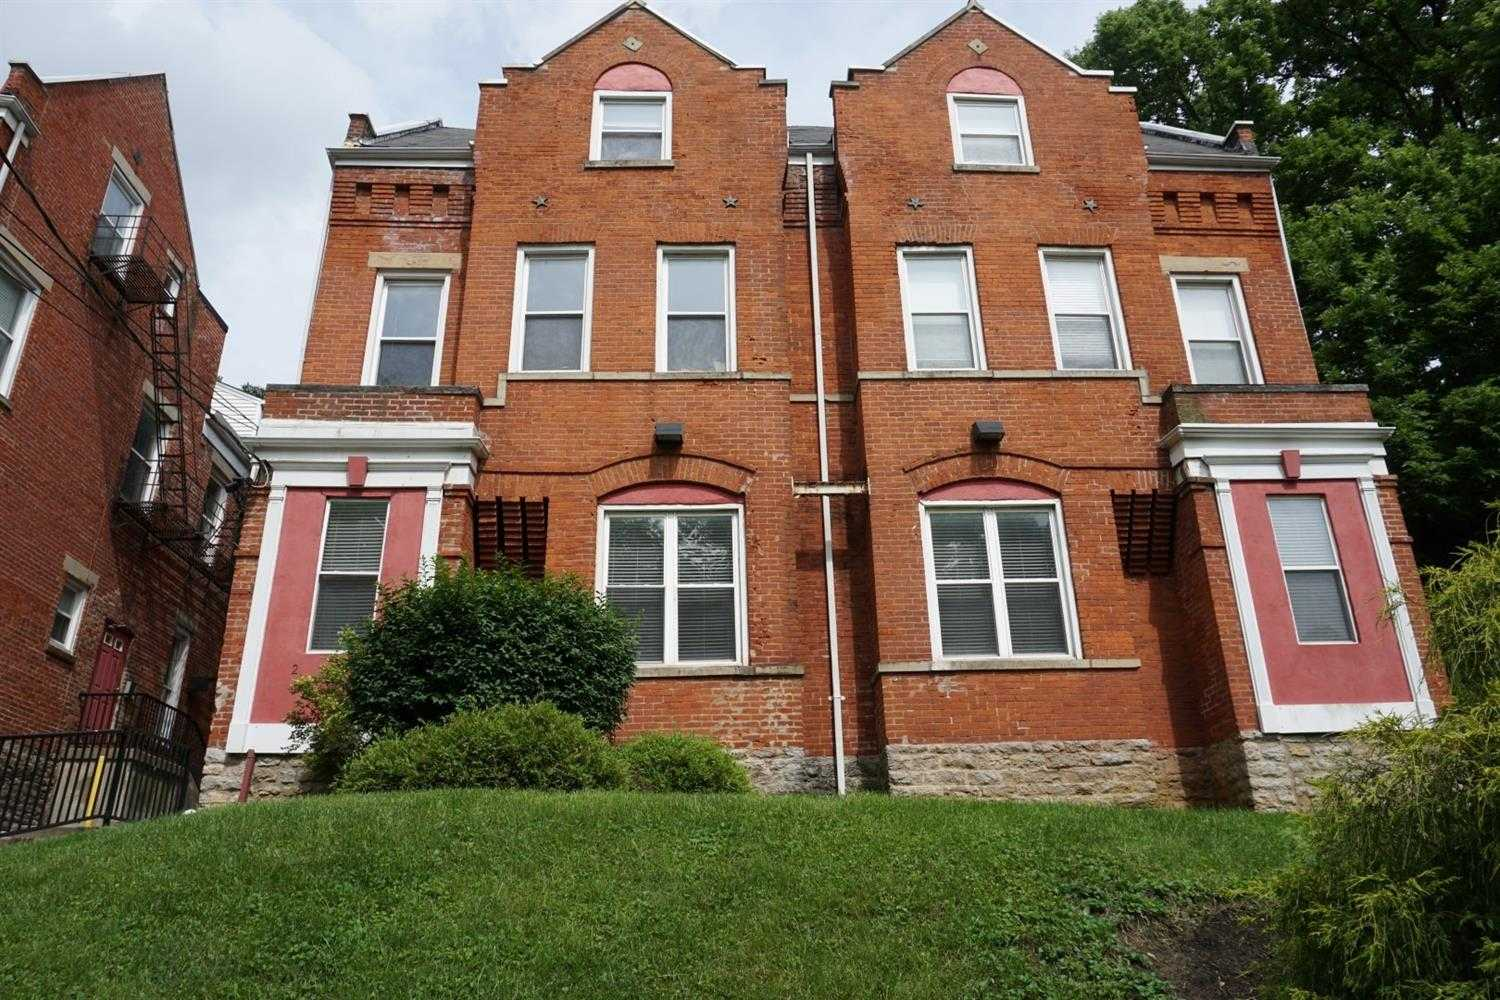 2100 Fulton Avenue Unit 6 Cincinnati,OH 45206 1626761